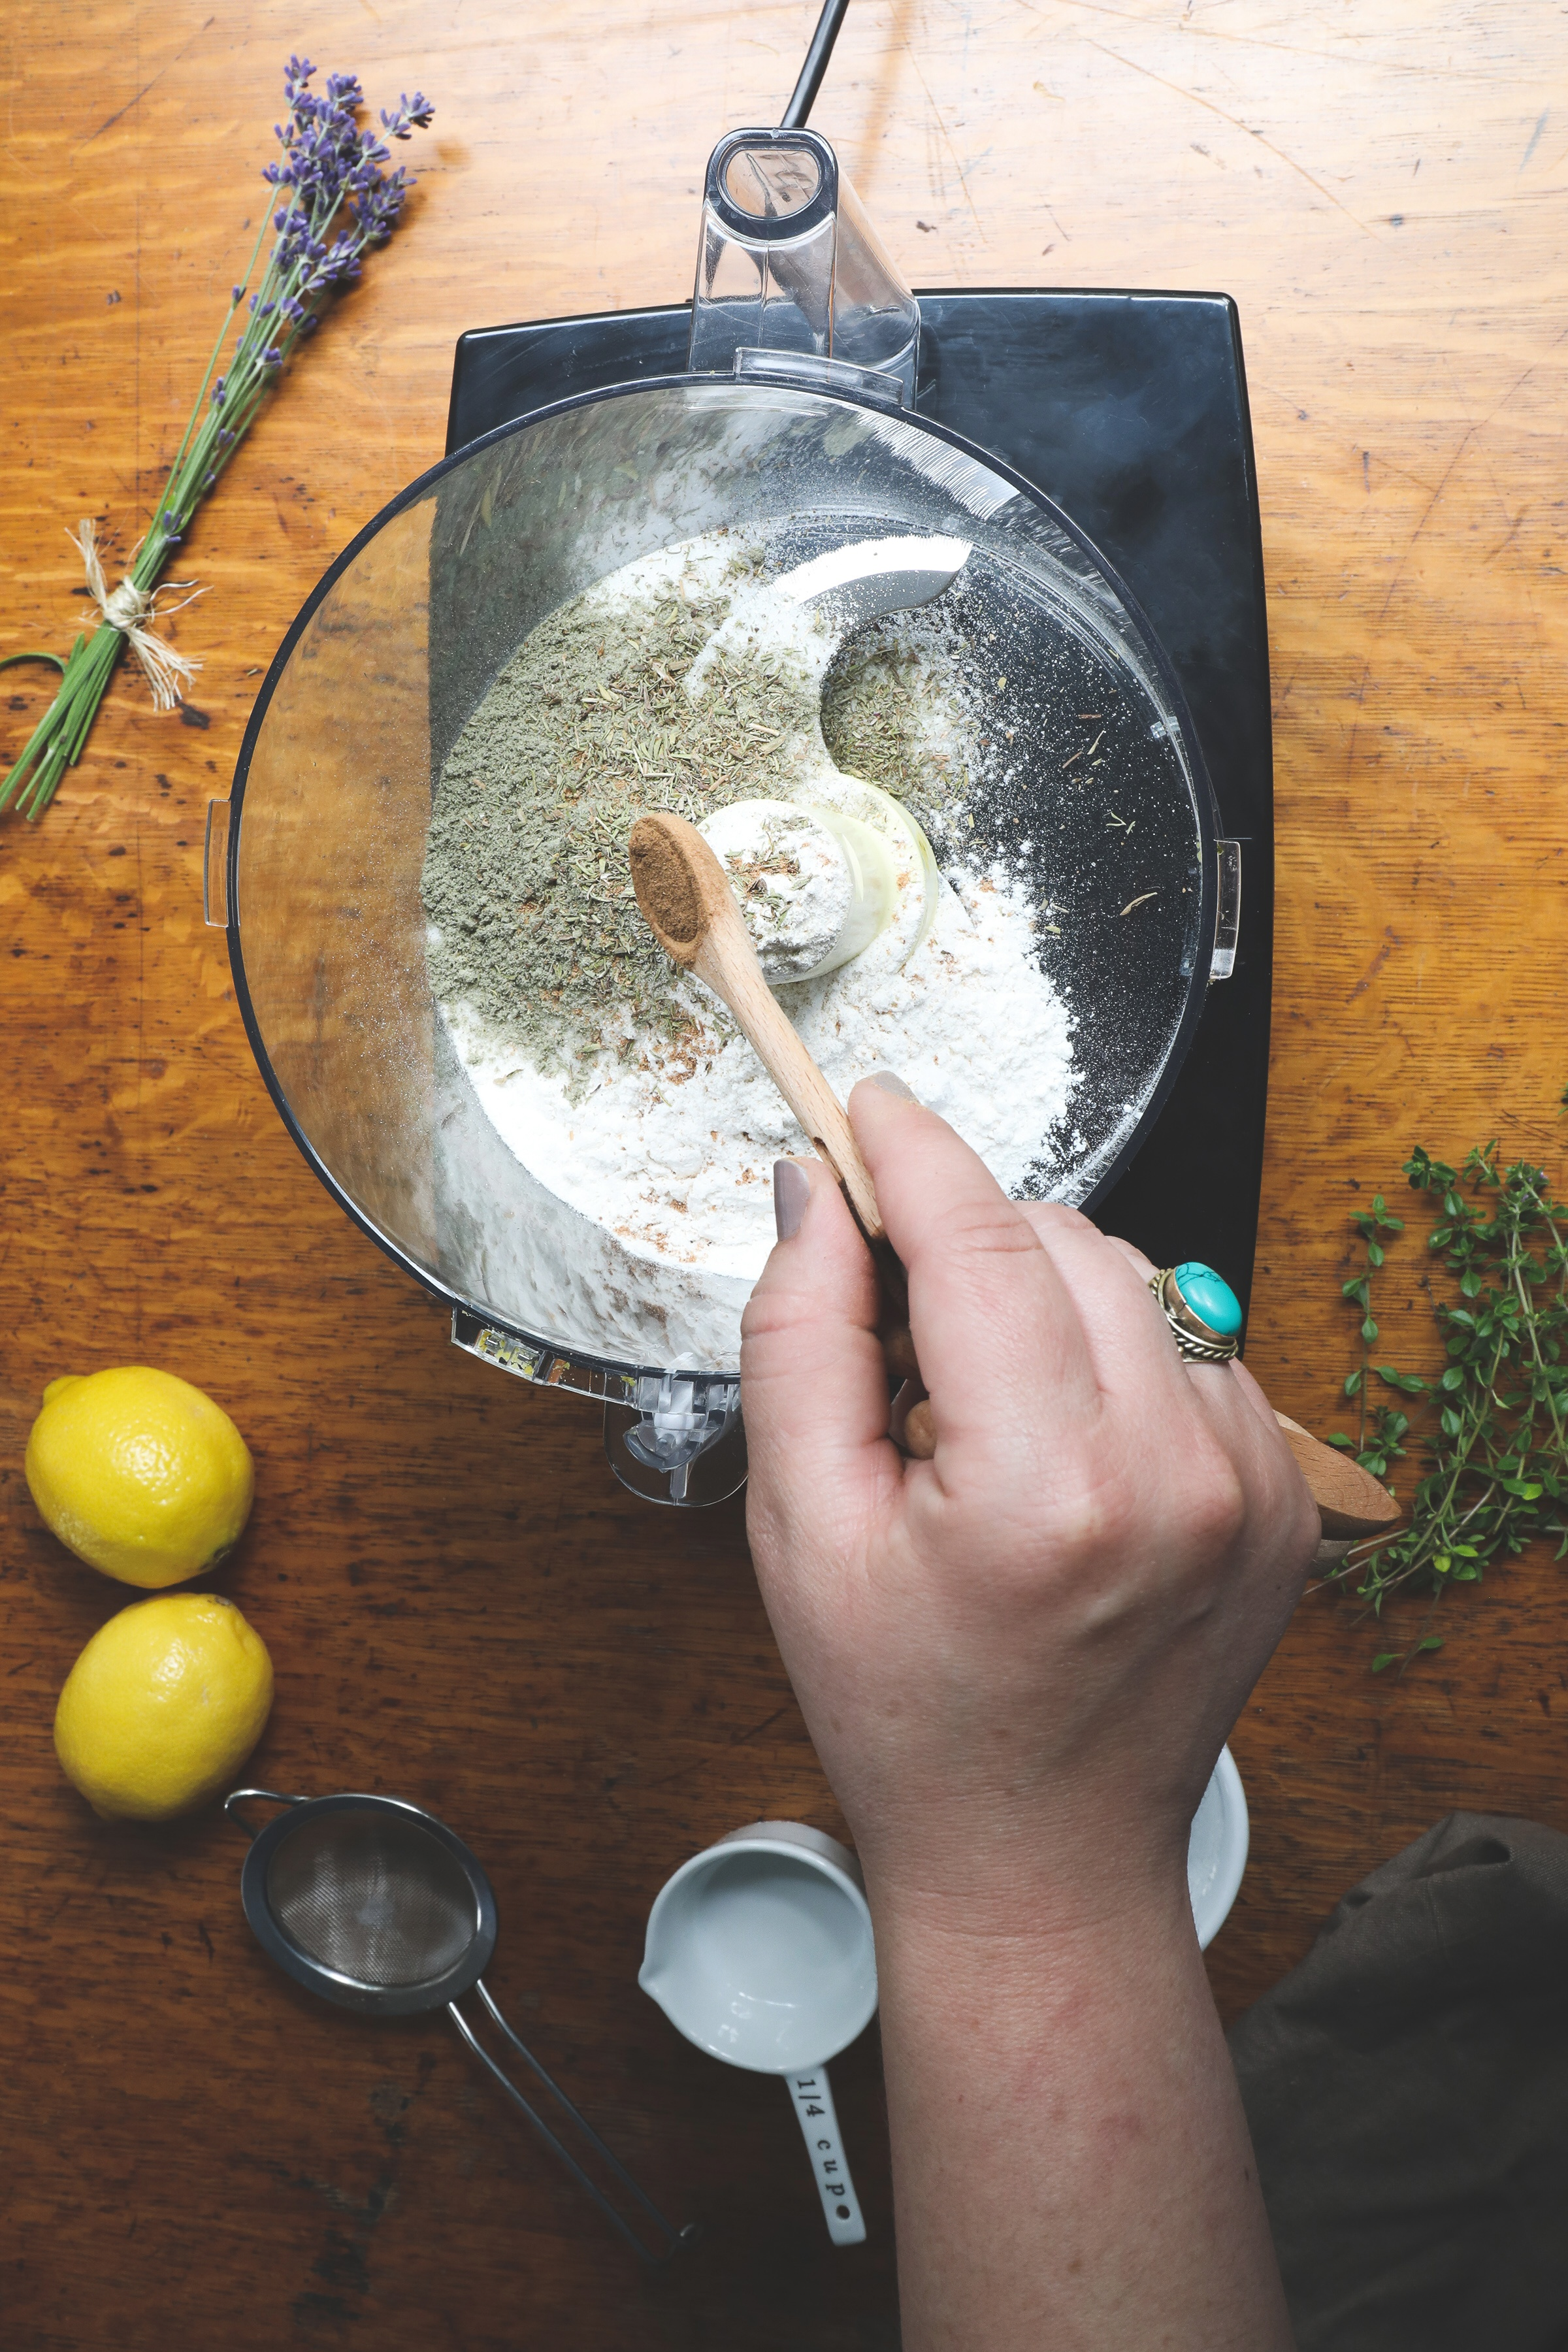 Hand adding spices to food processor with wooden spoon to make lemon bars